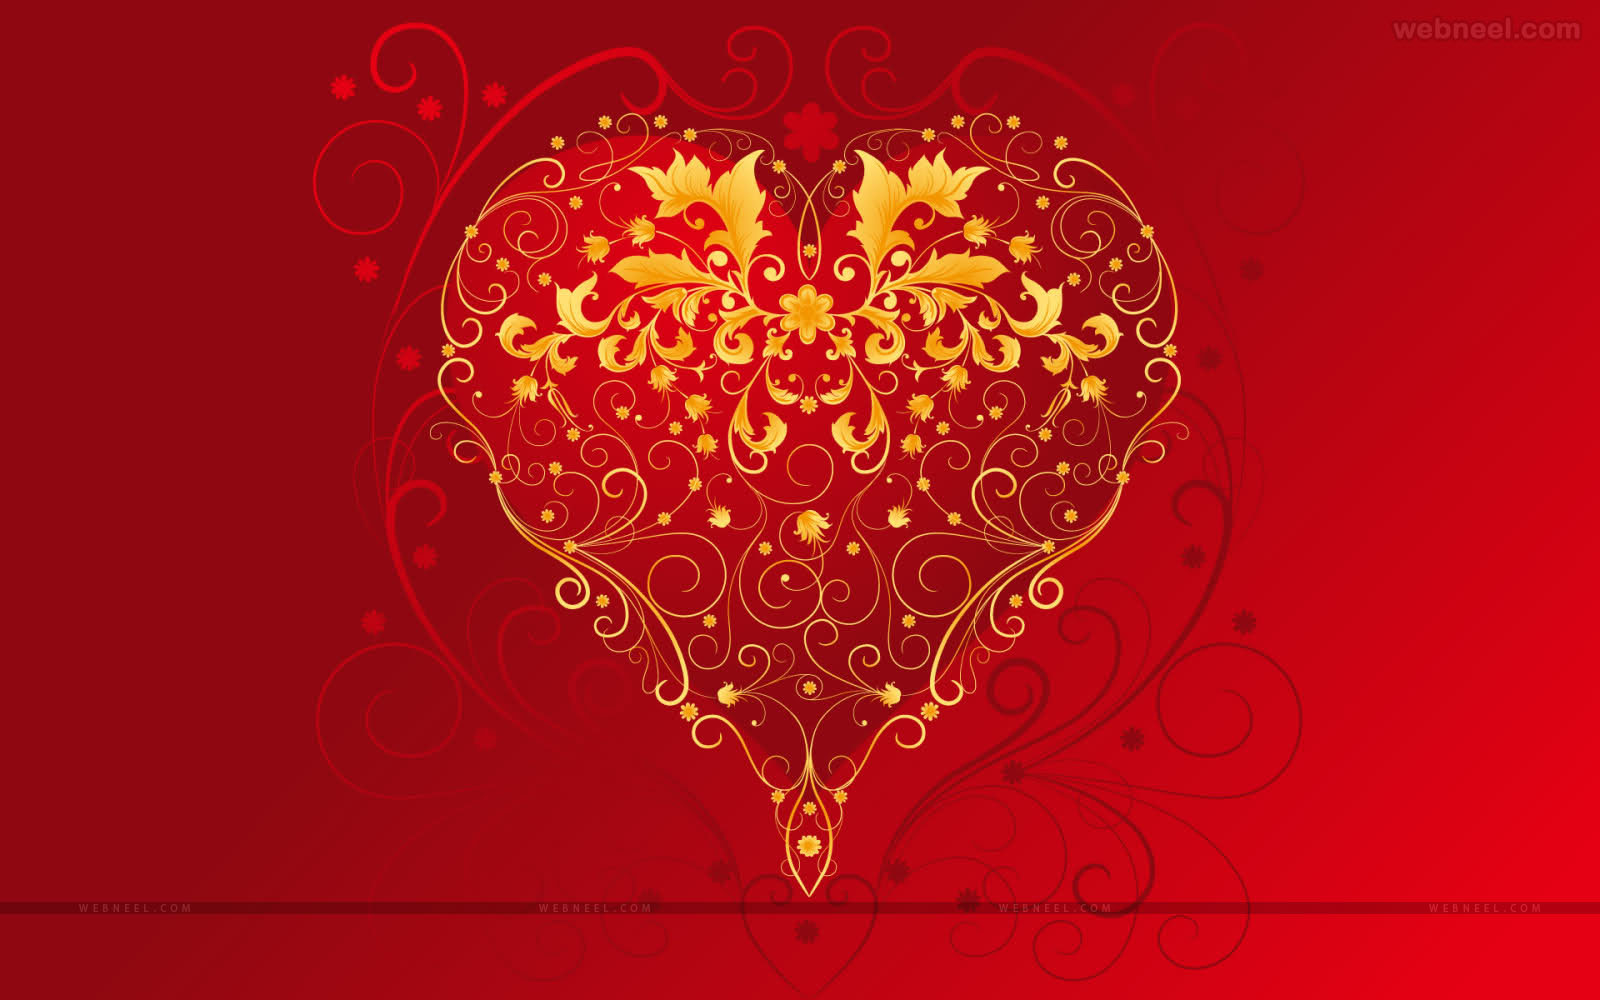 Size: 1024 X 640 Beautiful Valentines Day Wallpaper